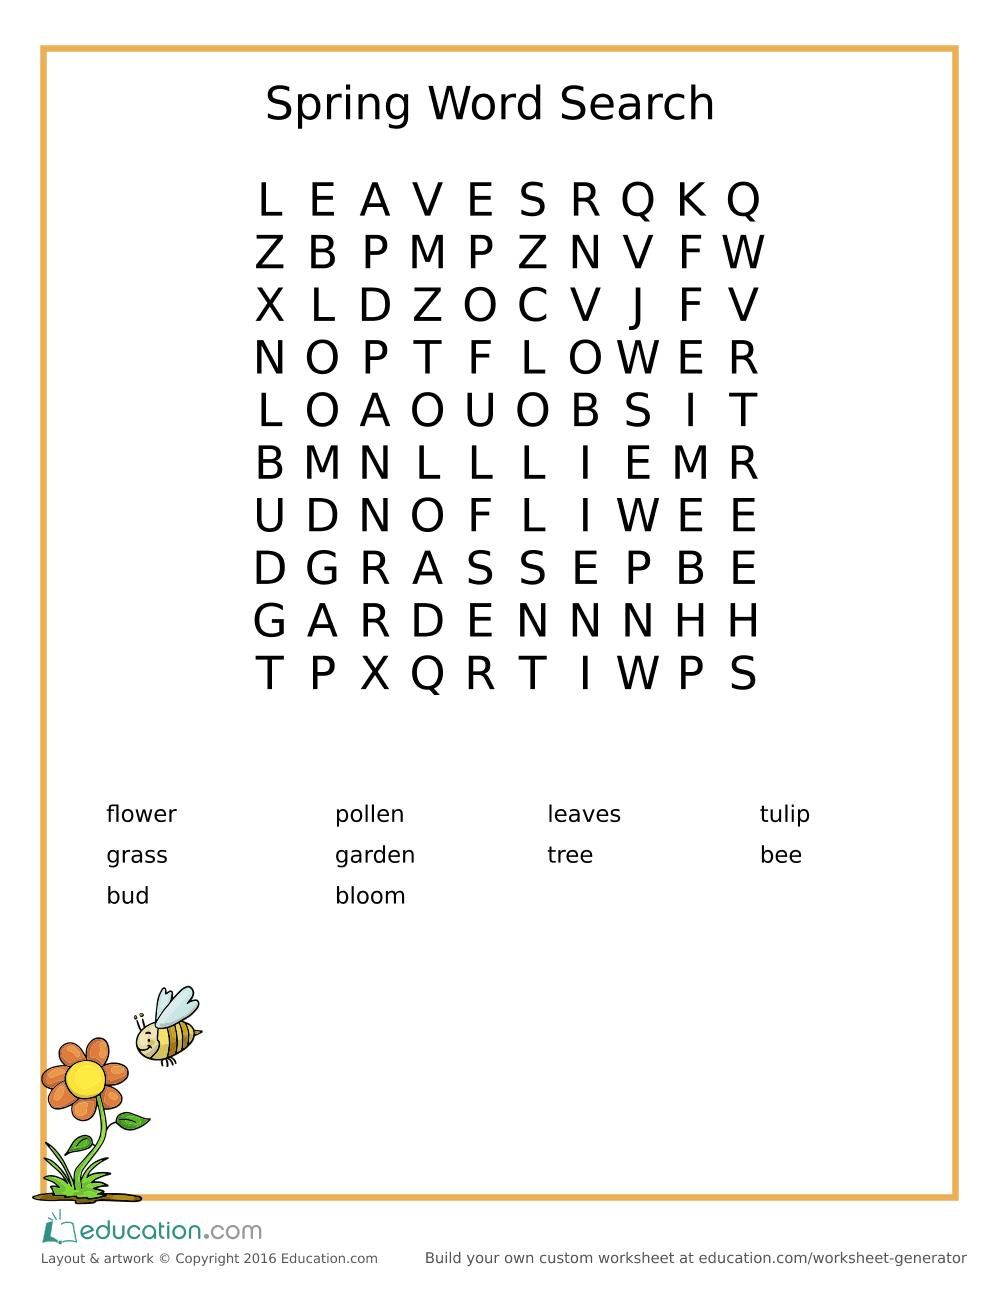 Free Printable Spring Word Search For Kids New And Natural Mom Spring Word Search Spring Words Word Find [ 1304 x 1000 Pixel ]